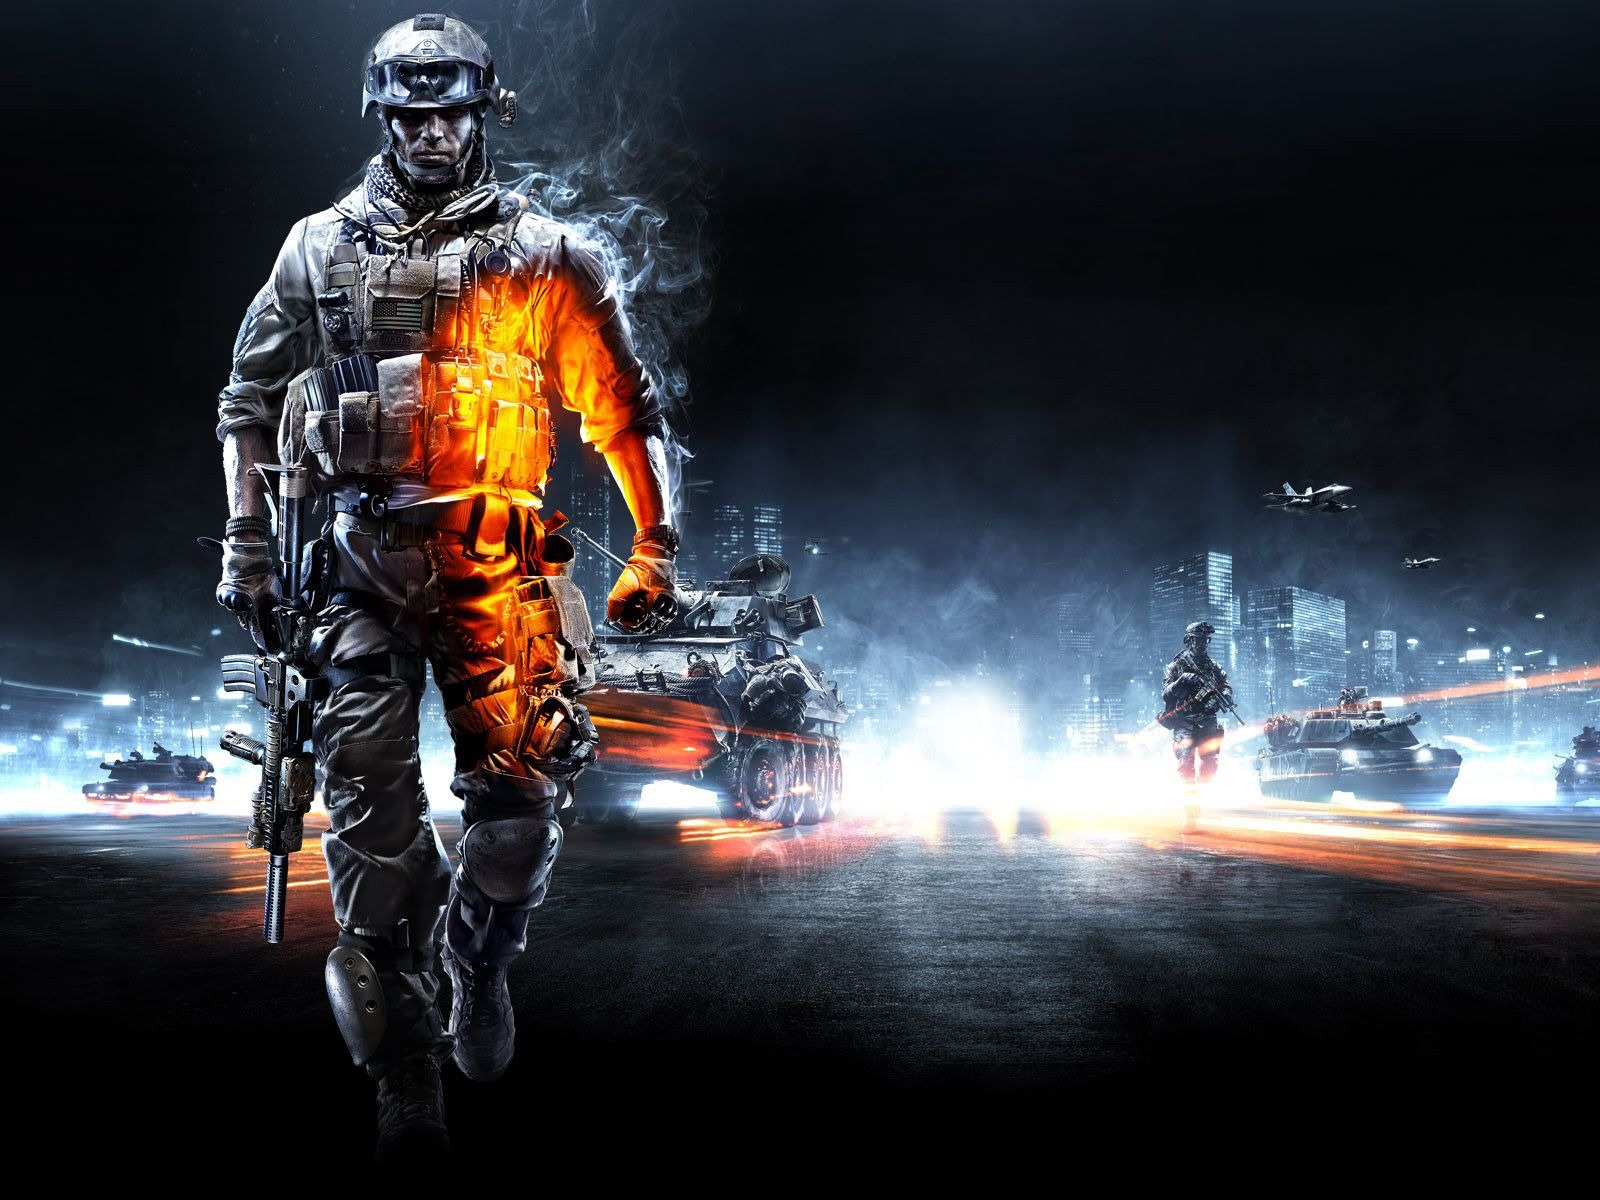 Battlefield 3 wallpapers #11 - 1600x1200 Wallpaper ...